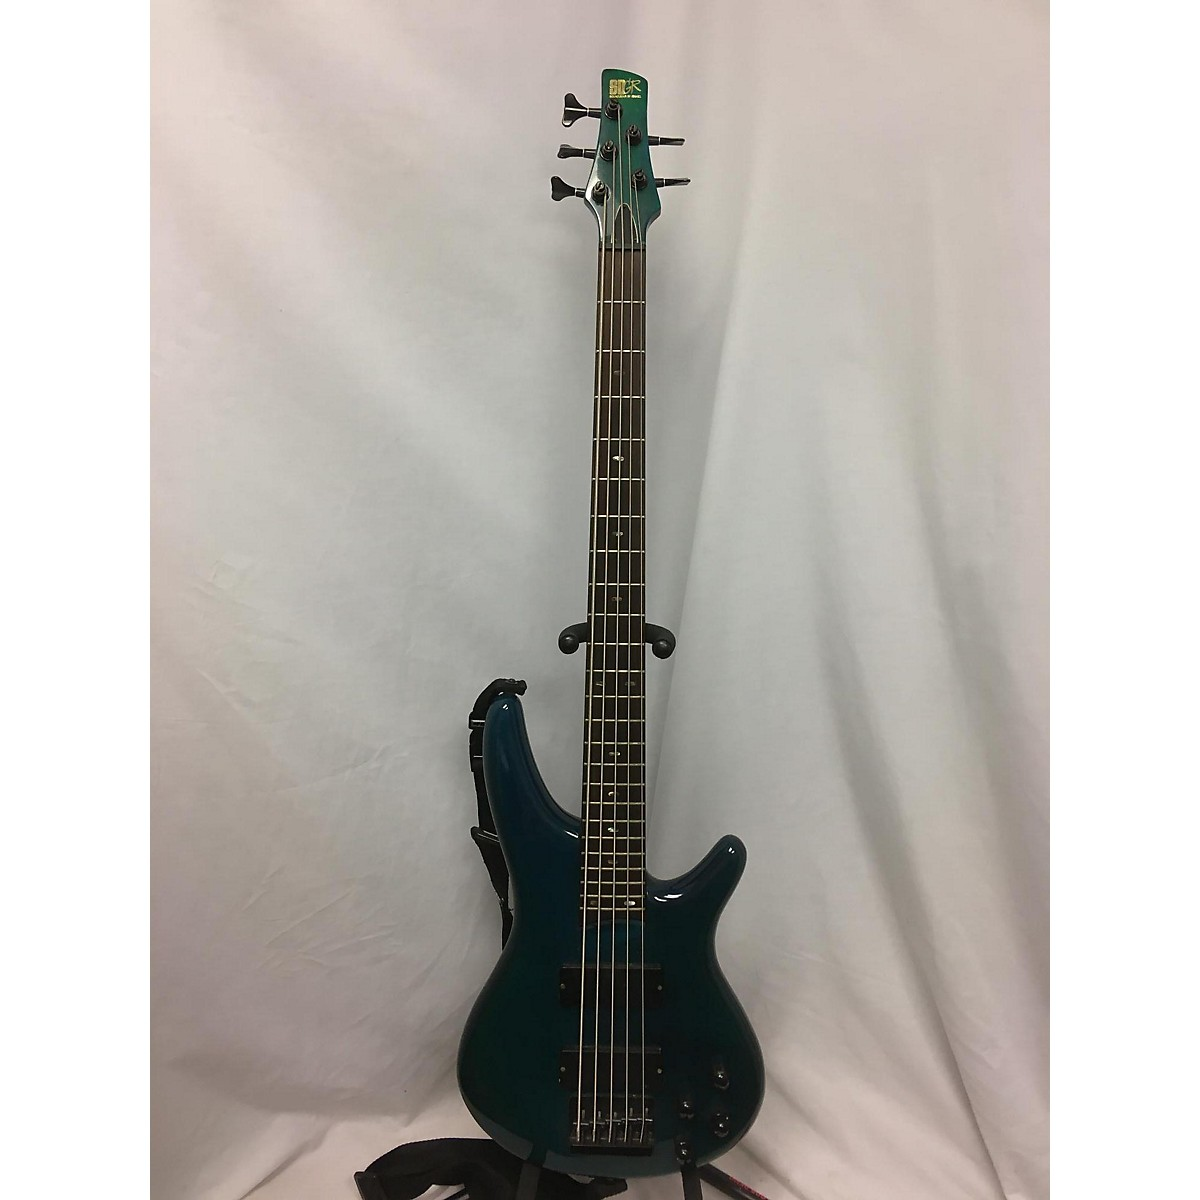 Ibanez 1995 SR885 Electric Bass Guitar